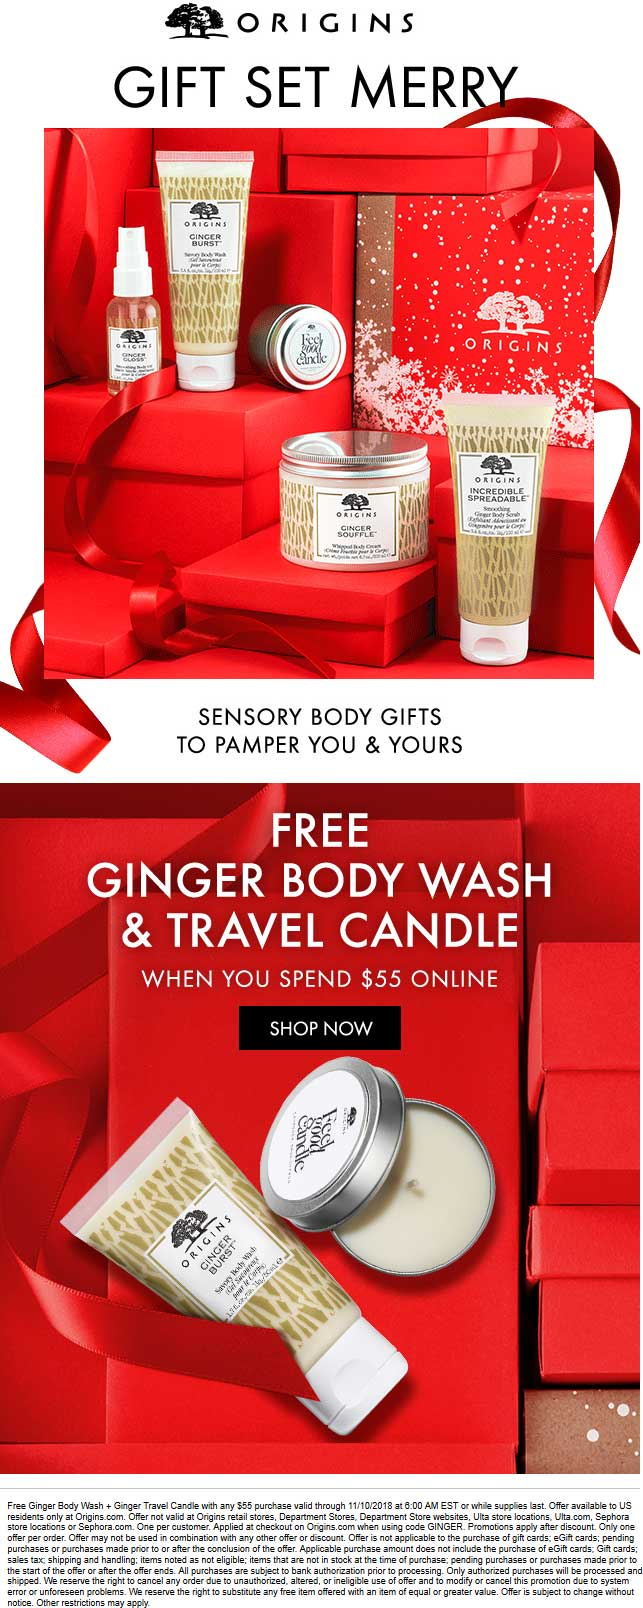 Origins Coupon January 2020 Free Ginger body wash + candle with $55 spent online at Origins via promo code GINGER